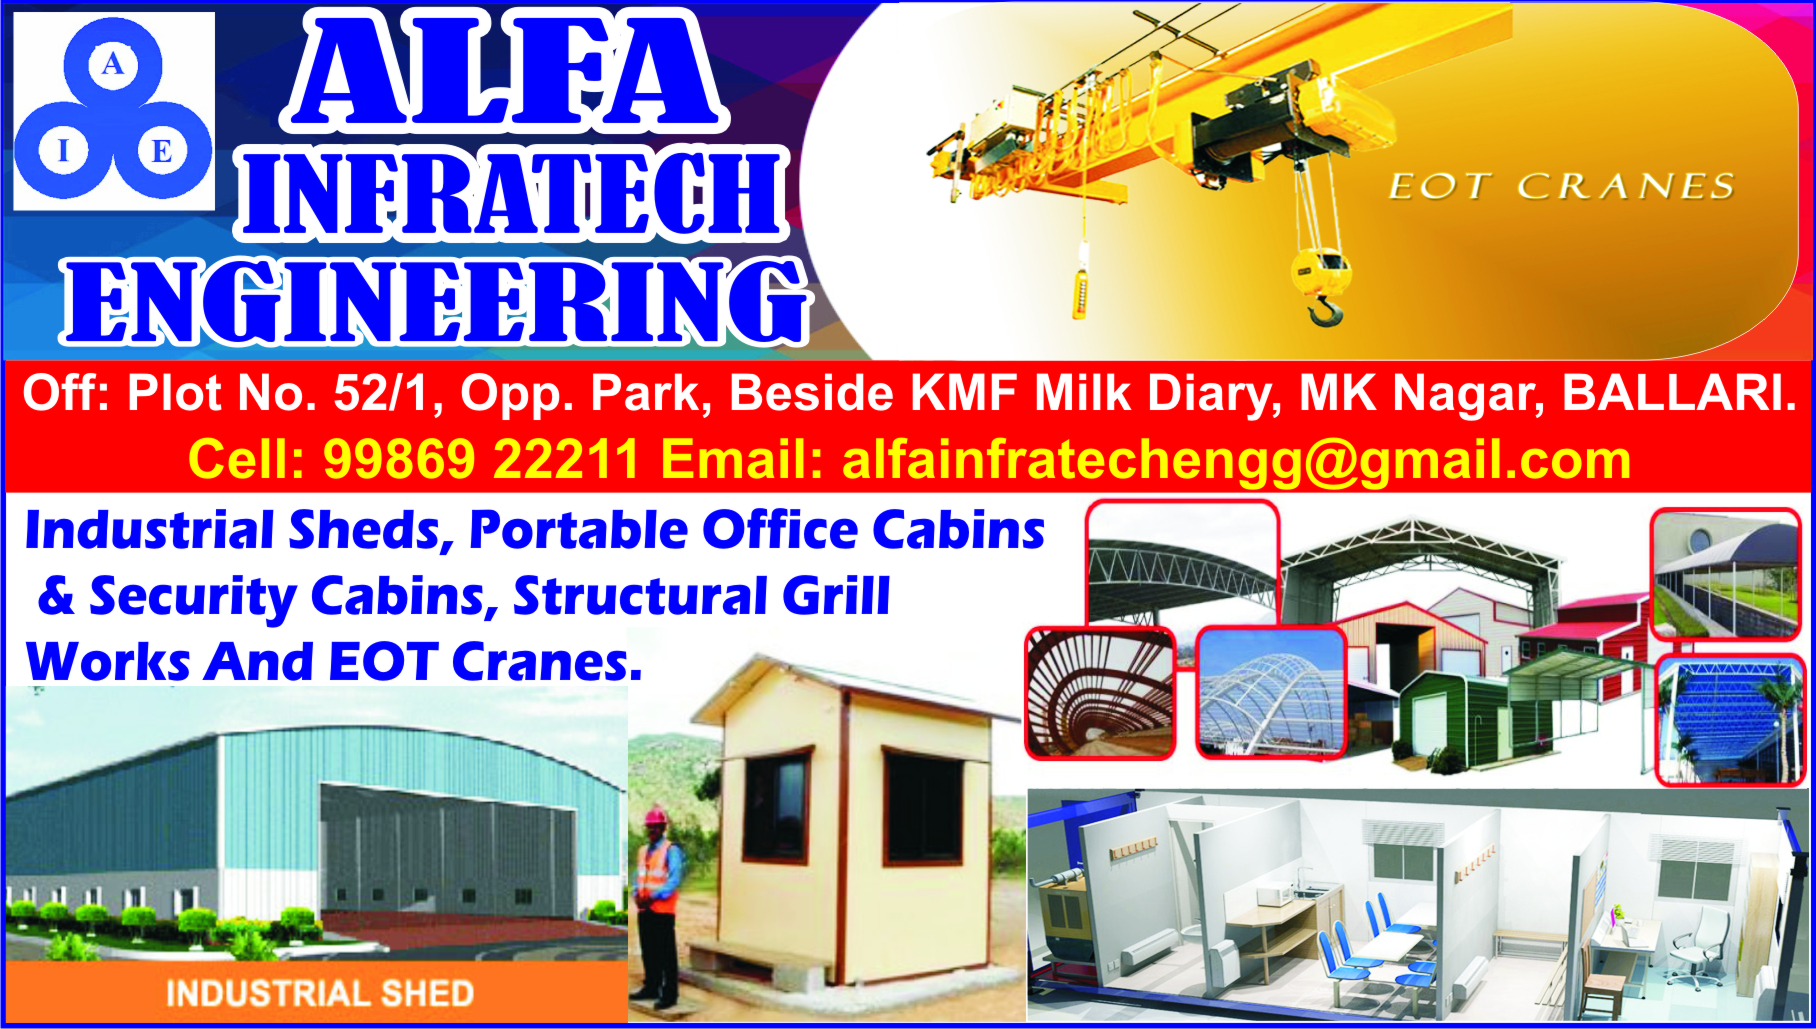 ALFA  INFRATECH  ENGINEERING